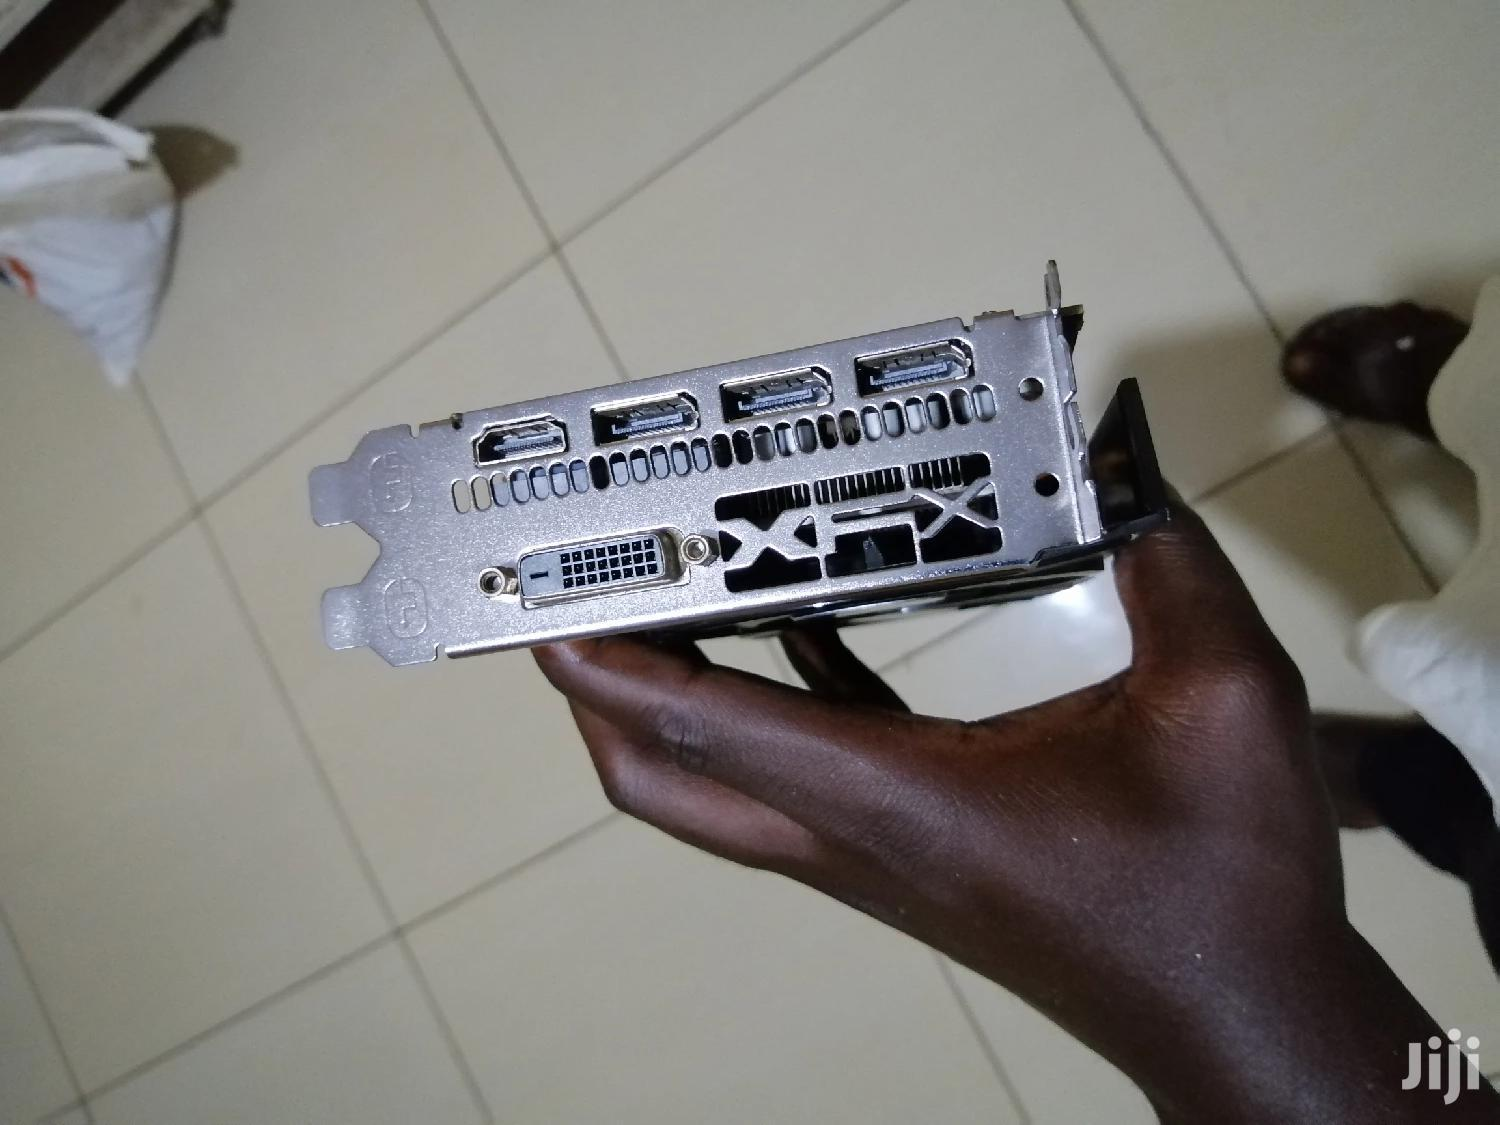 Xfx AMD RX470 4gb Graphics Card | Computer Hardware for sale in Accra Metropolitan, Greater Accra, Ghana